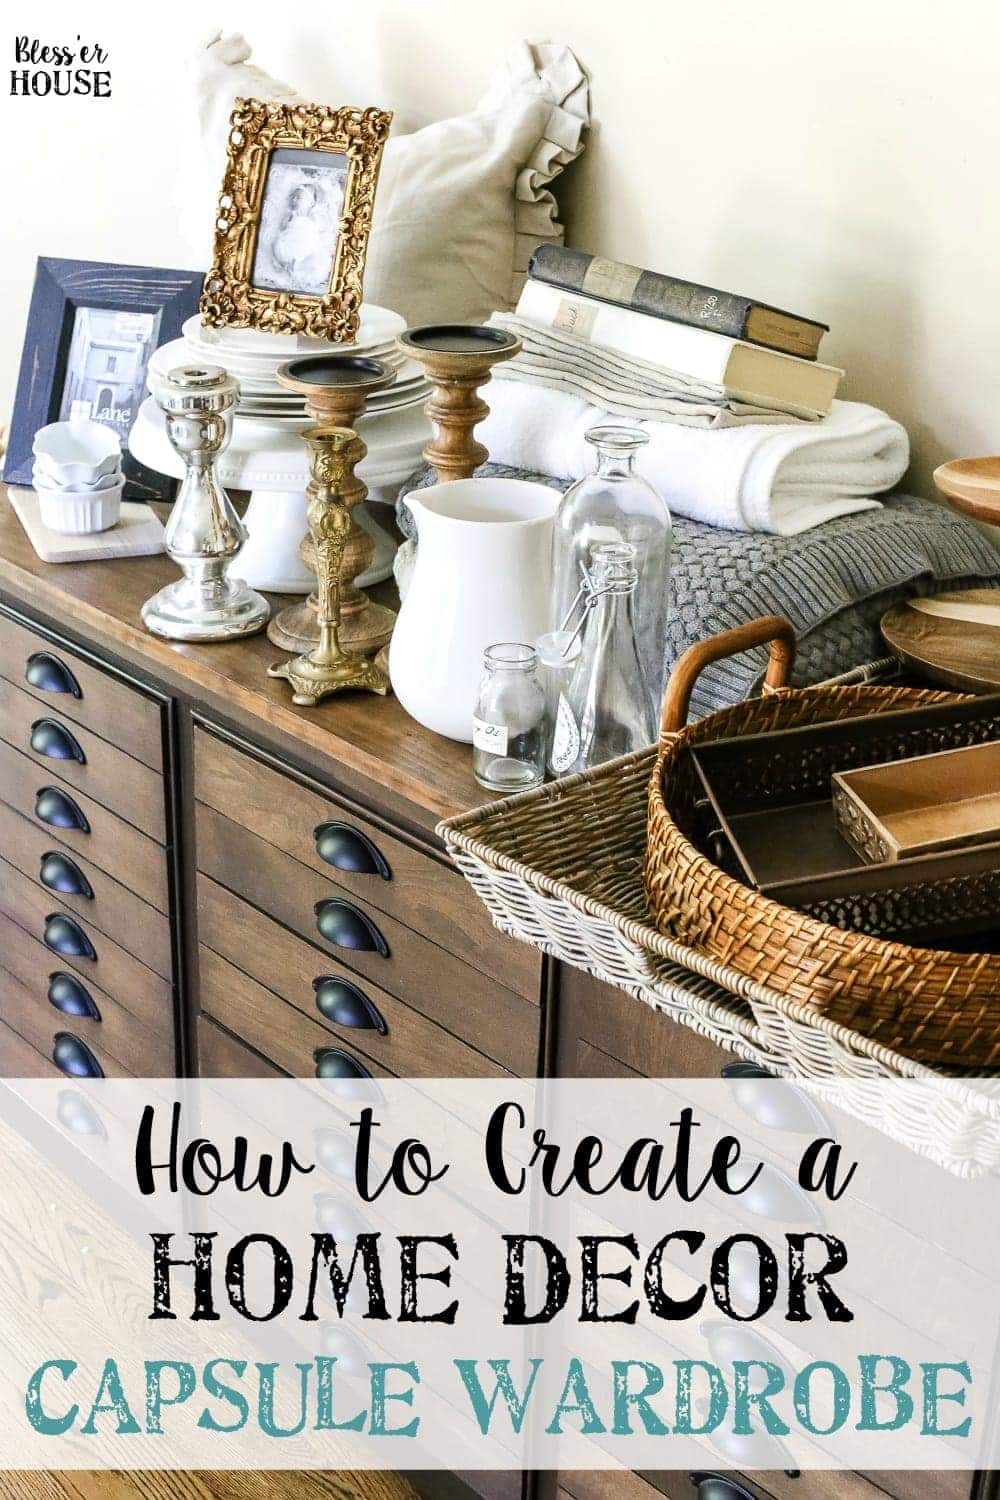 How to Create a Home Decor Capsule Wardrobe | blesserhouse.com